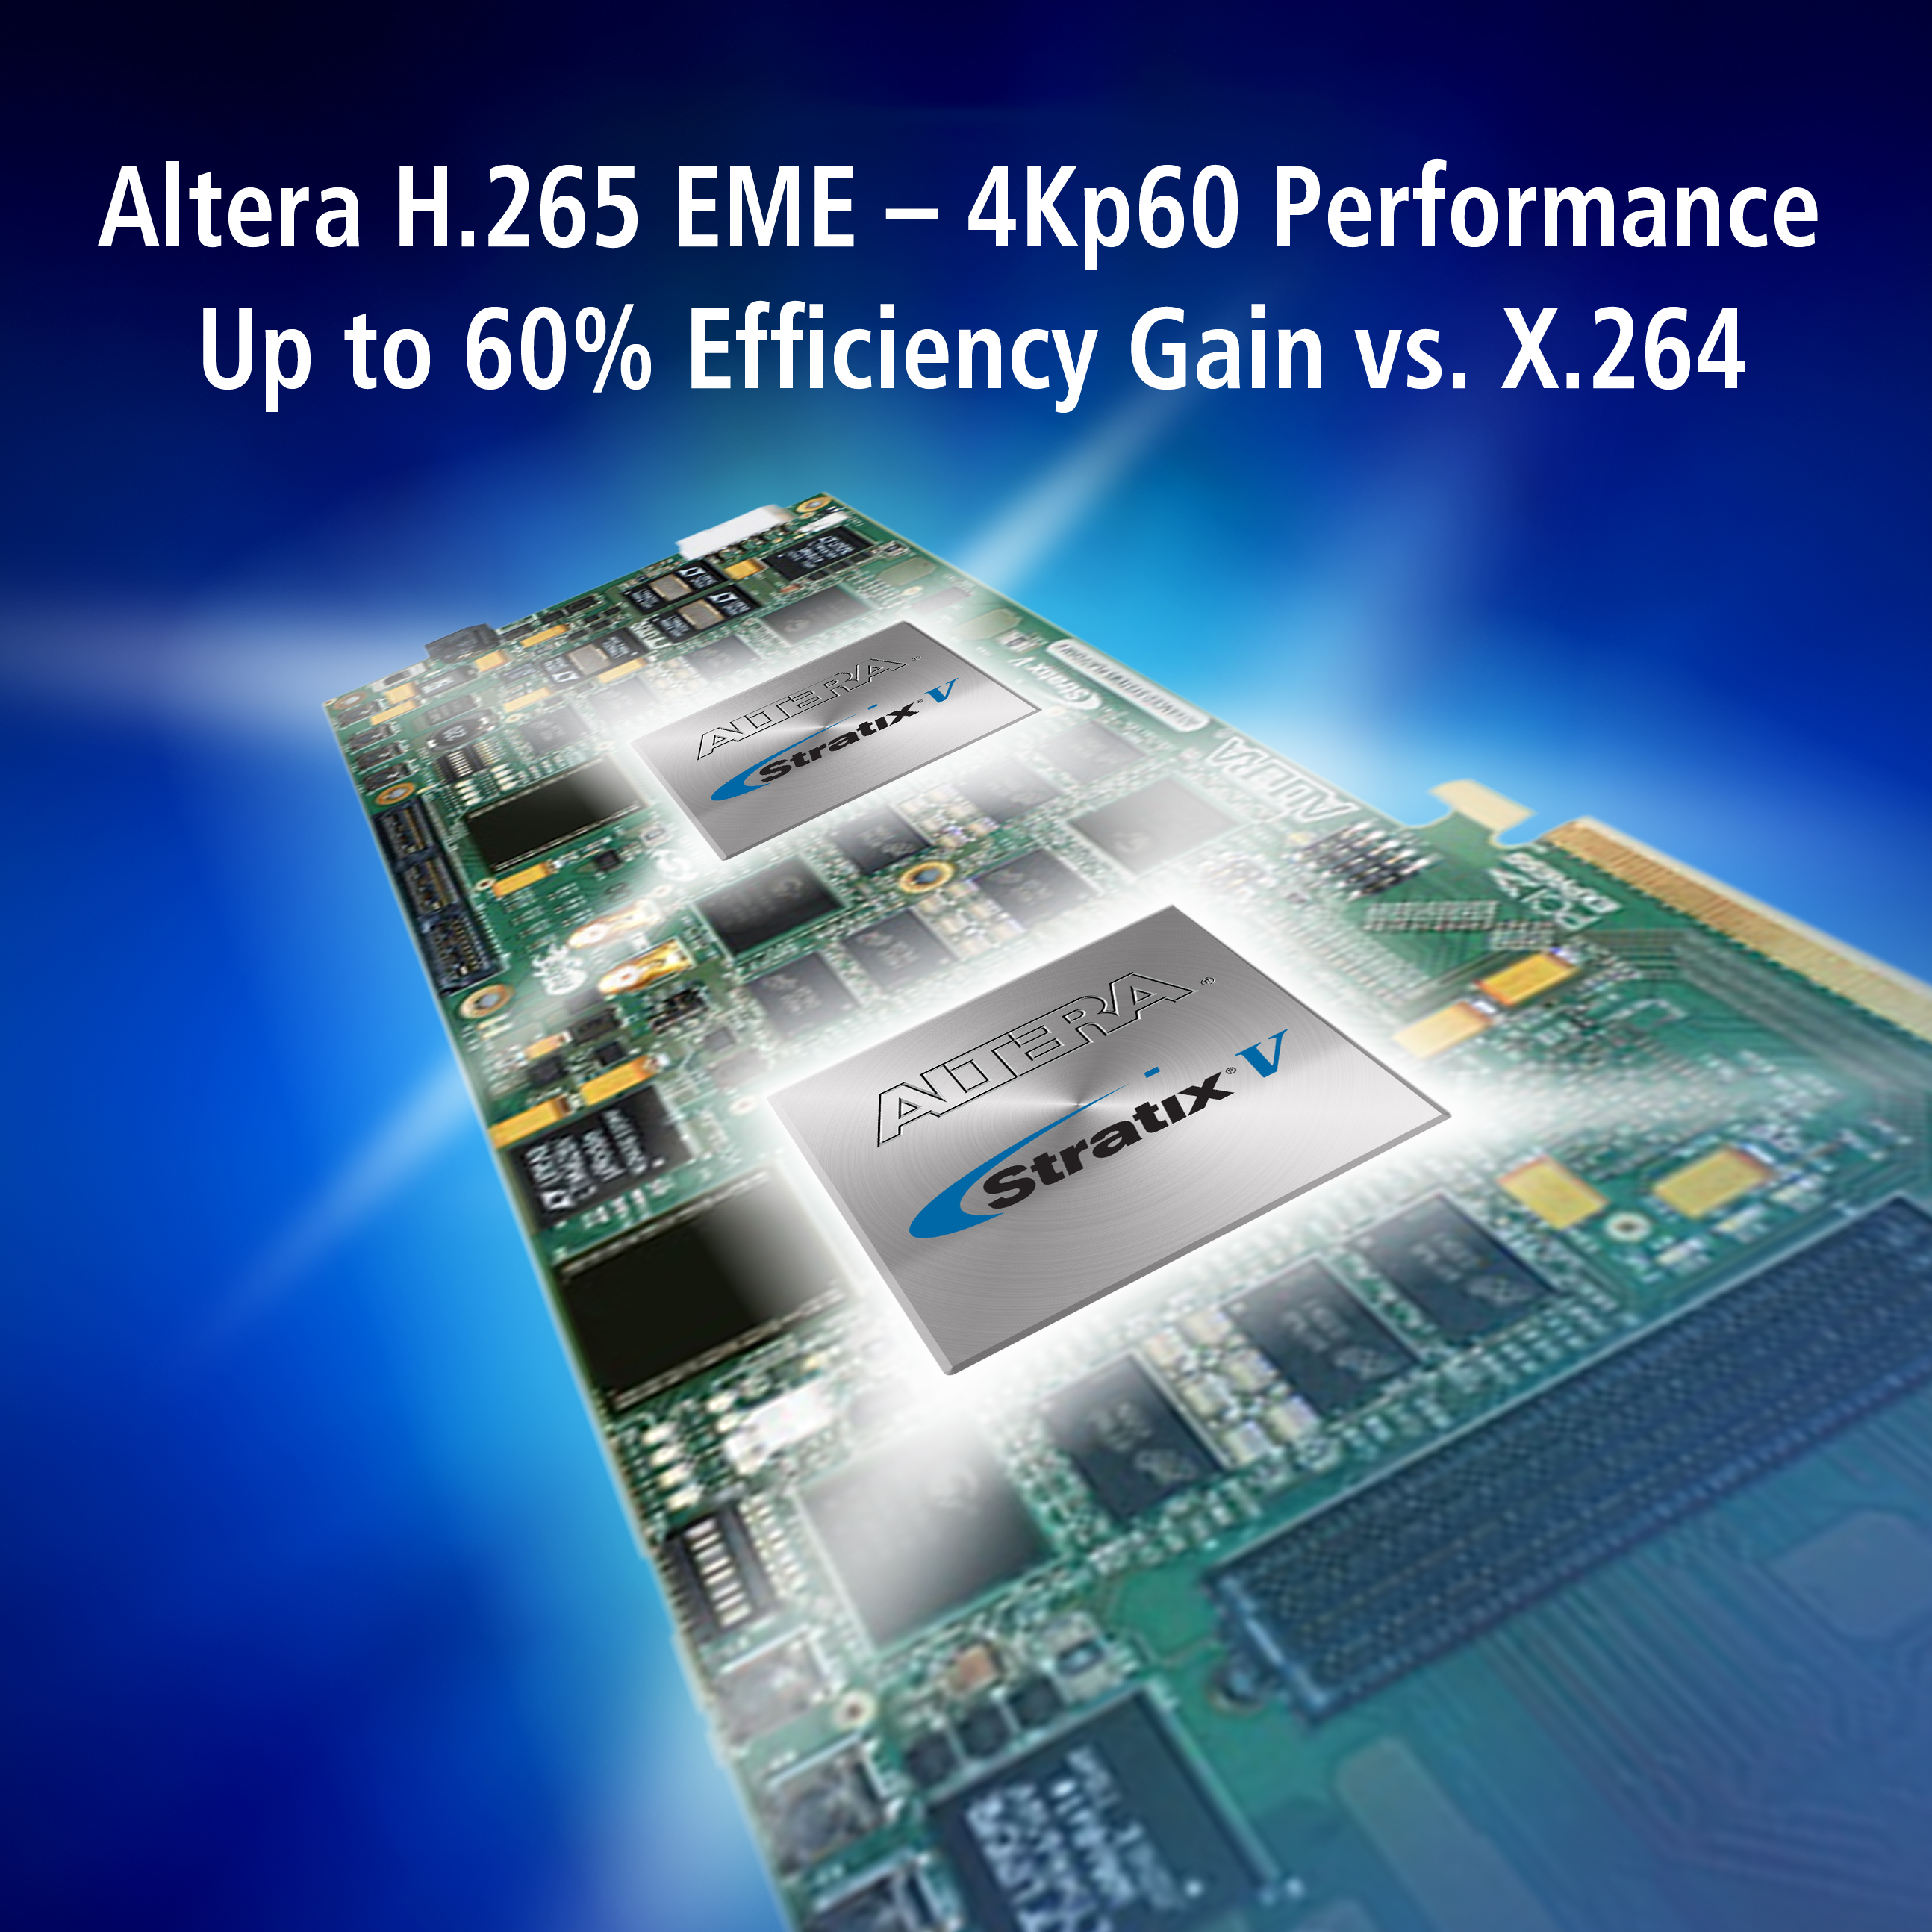 Altera H.265 4Kp60 Video Encoding selected by Harmonic